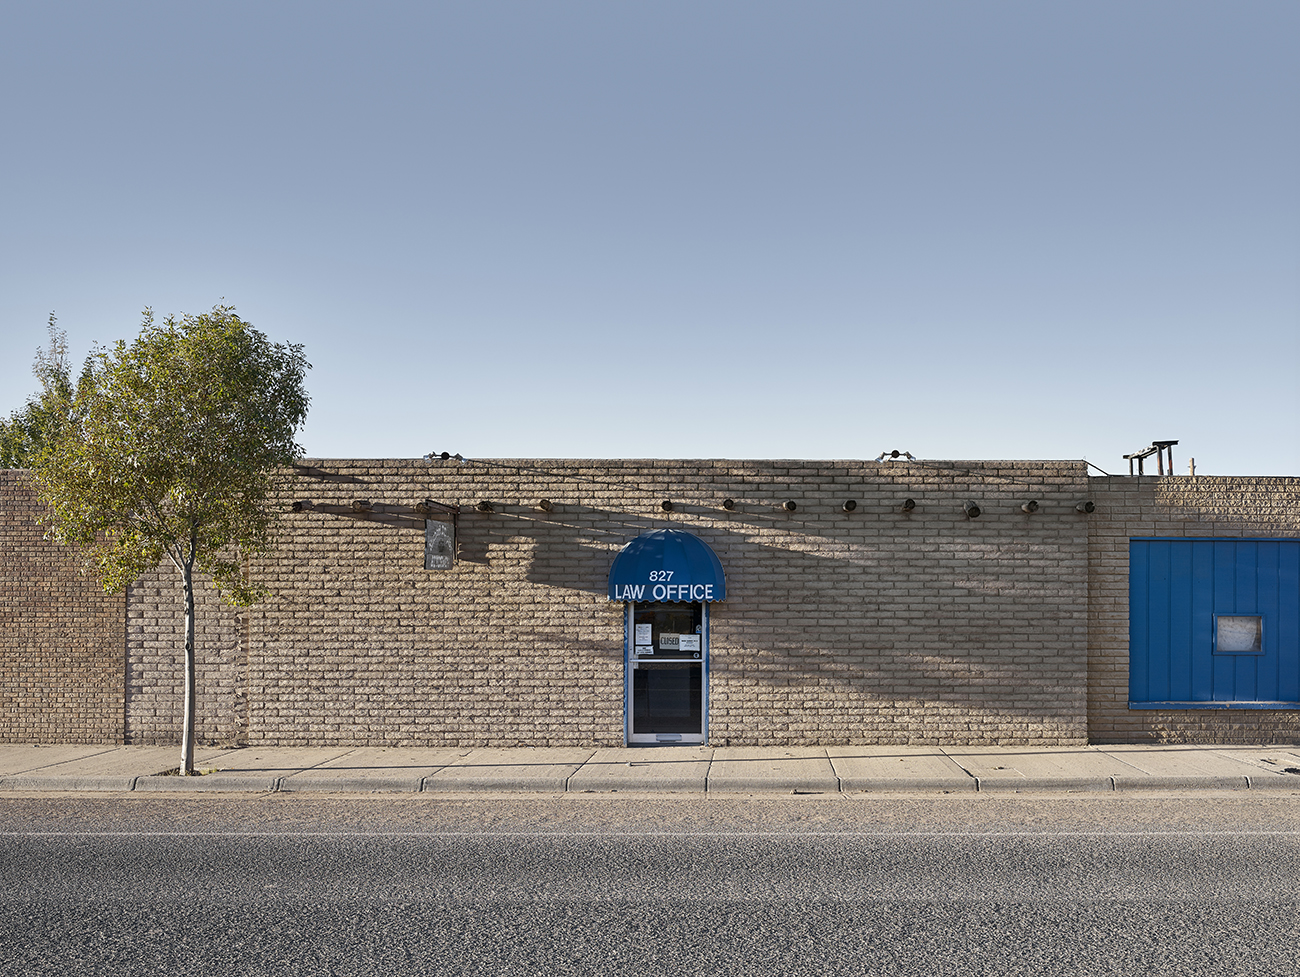 Law Office, New Mexico.jpg